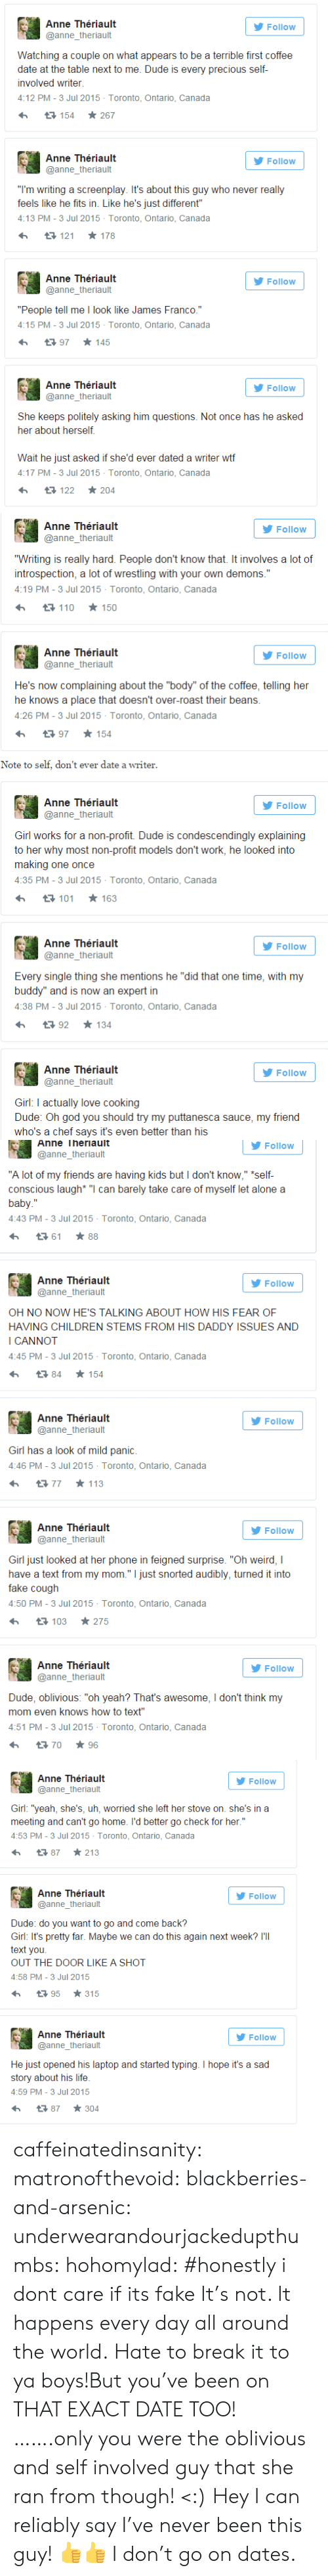 """Being Alone, Children, and Dude: Anne Thériault  Follow  @anne_theriault  Watching a couple on what appears to be a terrible first coffee  date at the table next to me. Dude is every precious self-  involved writer  4:12 PM - 3 Jul 2015 Toronto, Ontario, Canada  267  t3 154  Anne Thériault  Follow  @anne_theriault  """"I'm writing a screenplay. It's about this guy who never really  feels like he fits in. Like he's just different""""  4:13 PM - 3 Jul 2015 Toronto, Ontario, Canada  178  121  Anne Thériault  Follow  @anne_theriault  """"People tell me I look like James Franco.""""  4:15 PM - 3 Jul 2015 Toronto, Ontario, Canada  145  t97  Anne Thériault  Follow  @anne_theriault  She keeps politely asking him questions. Not once has he asked  her about herself  Wait he just asked if she'd ever dated a writer wtf  4:17 PM - 3 Jul 2015 Toronto, Ontario, Canada  204  122   Anne Thériault  Follow  @anne_theriault  """"Writing is really hard. People don't know that. It involves a lot of  introspection, a lot of wrestling with your own demons.""""  4:19 PM - 3 Jul 2015 Toronto, Ontario, Canada  t 110 150  Anne Thériault  Follow  @anne_theriault  He's now complaining about the """"body"""" of the coffee, telling her  he knows a place that doesn't over-roast their beans.  4:26 PM - 3 Jul 2015 Toronto, Ontario, Canada  154  t 97  Note to self, don't ever date a writer.  Anne Thériault  Follow  @anne_theriault  Girl works for a non-profit. Dude is condescendingly explaining  to her why most non-profit models don't work, he looked into  making one once  4:35 PM - 3 Jul 2015 Toronto, Ontario, Canada  163  t 101  Anne Thériault  Follow  @anne_theriault  Every single thing she mentions he """"did that one time, with my  buddy"""" and is now an expert in  4:38 PM - 3 Jul 2015 Toronto, Ontario, Canada  134  t92  Anne Thériault  Follow  @anne_theriault  Girl: I actually love cooking  Dude: Oh god you should try my puttanesca sauce, my friend  who's a chef says it's even better than his   Anne Theriault  Follow  @anne"""